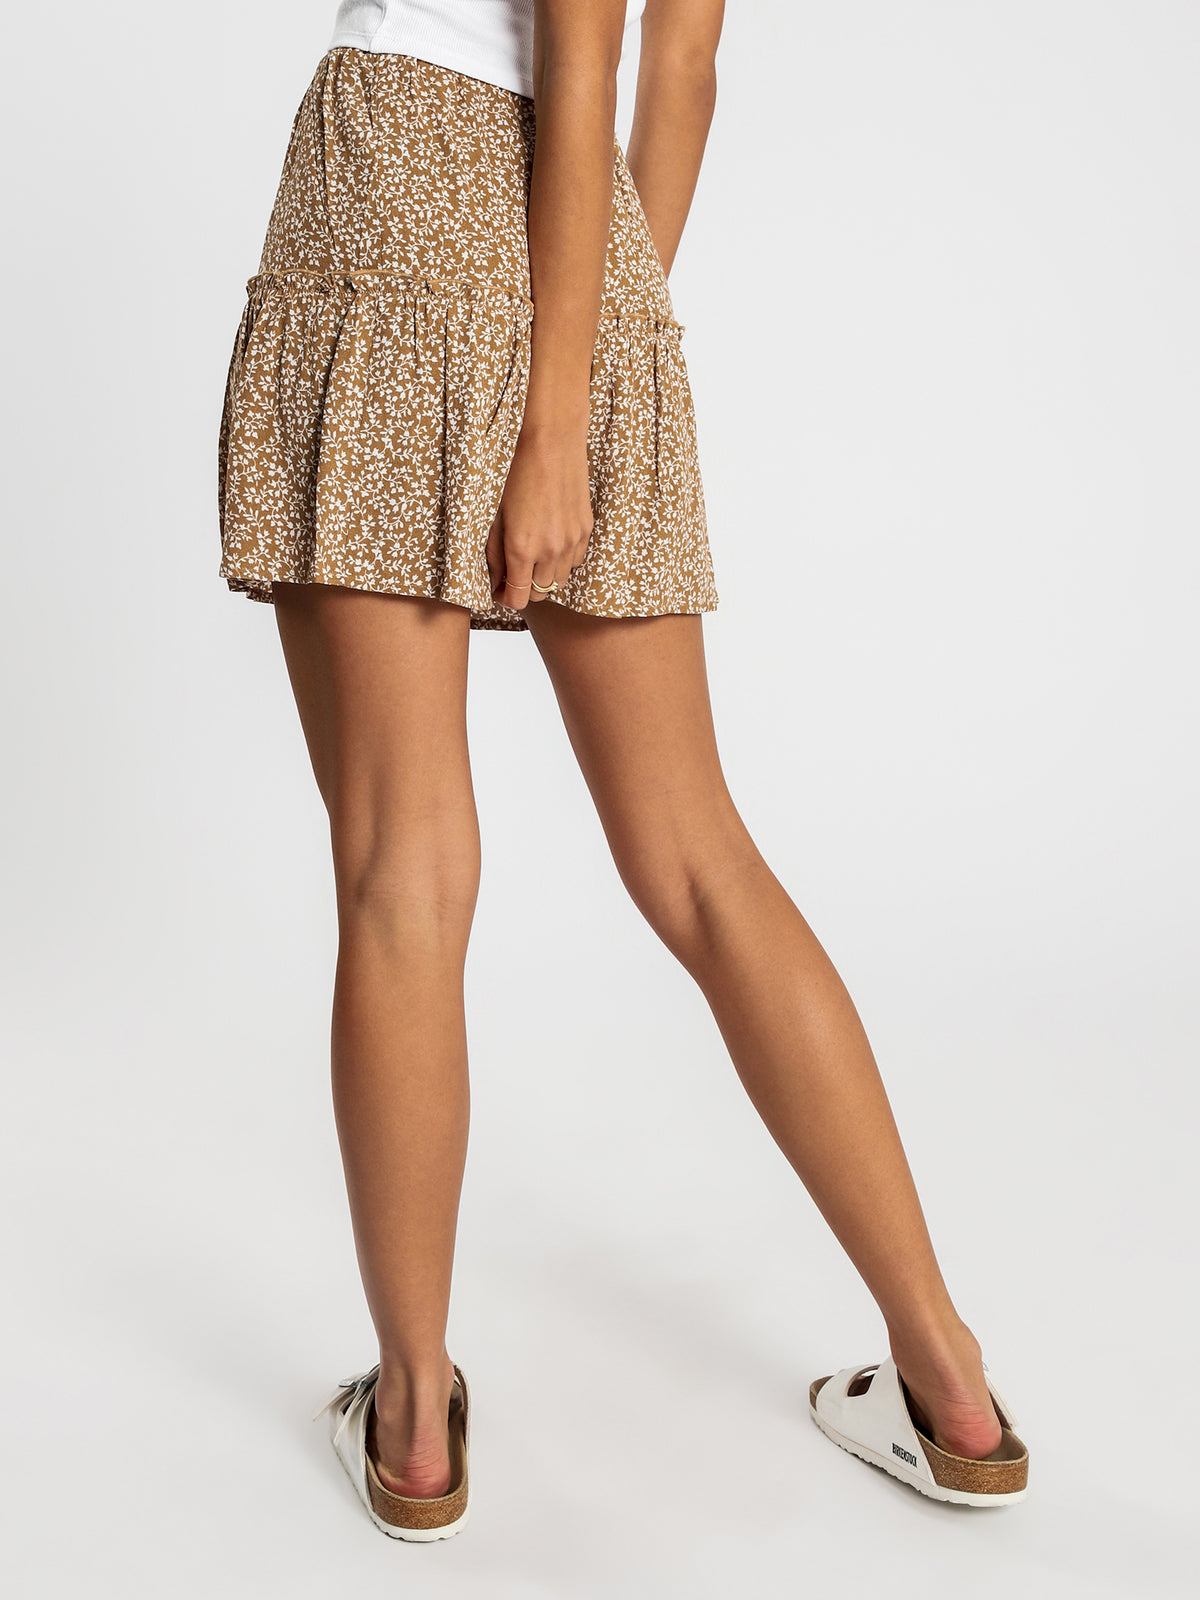 Ginne Skirt Dress in Tan Floral